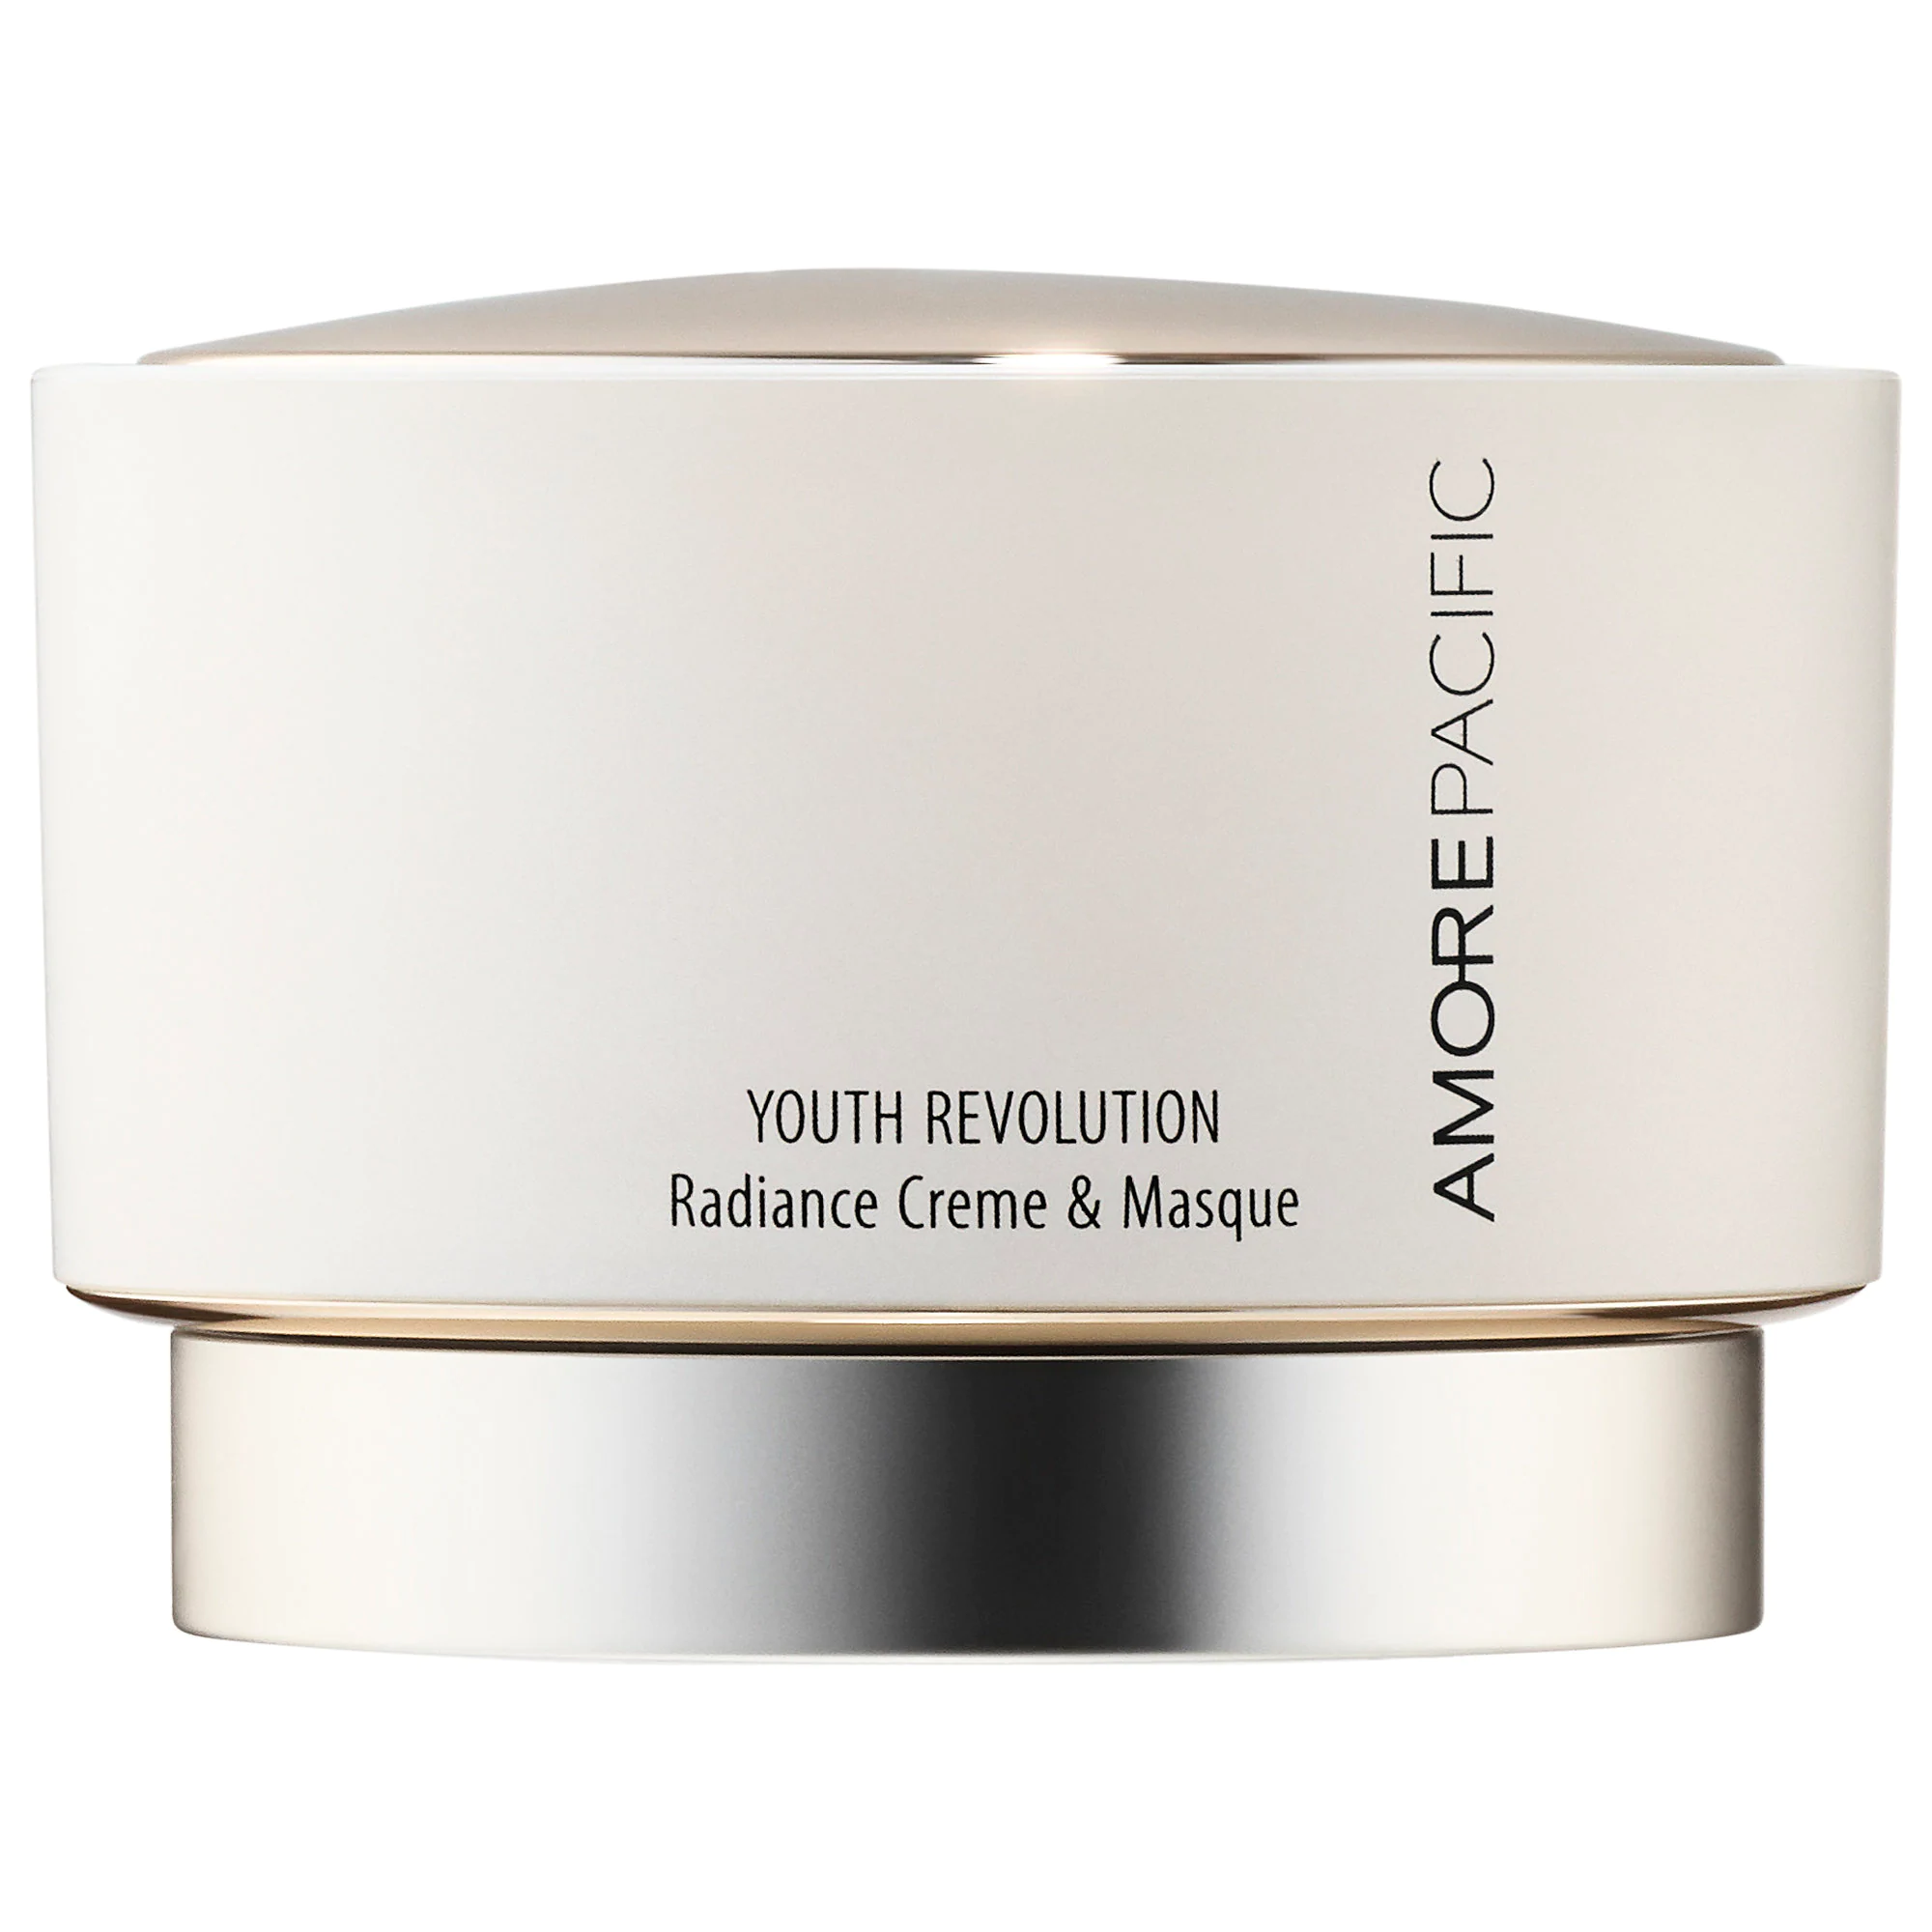 AMOREPACIFIC Youth Revolution Radiance Crème & Masque